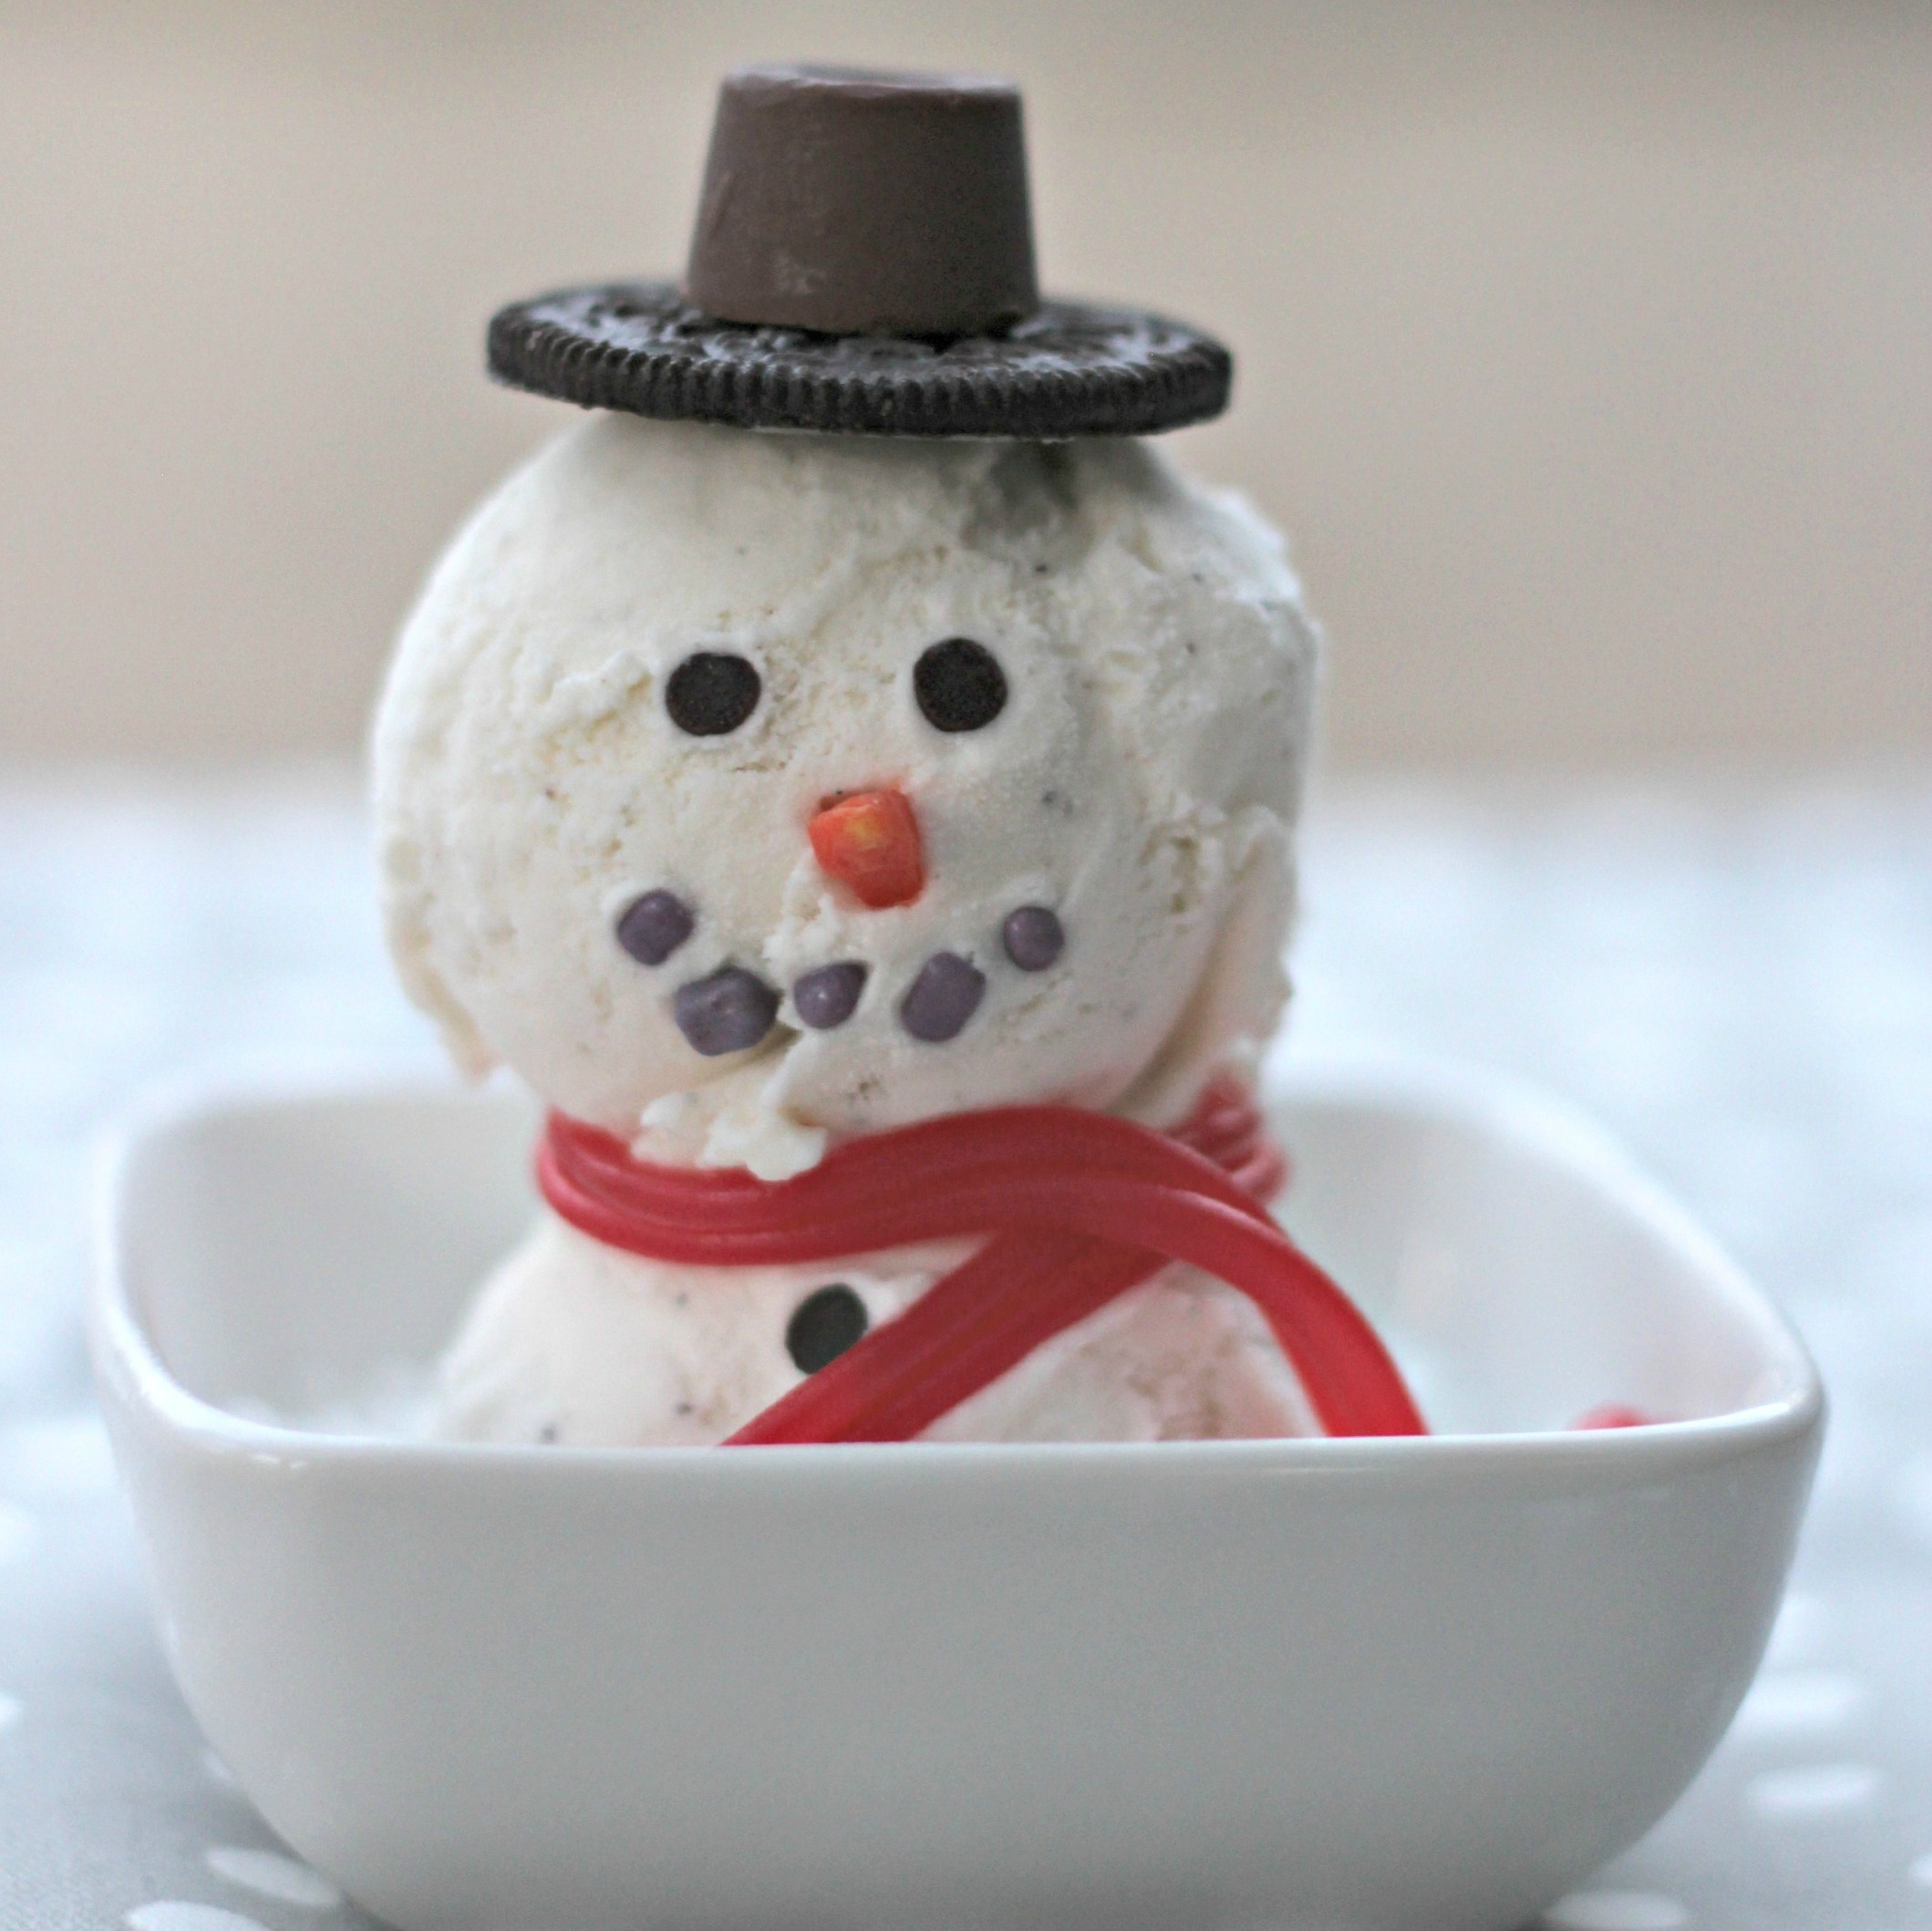 Homemade Ice Cream Snowman